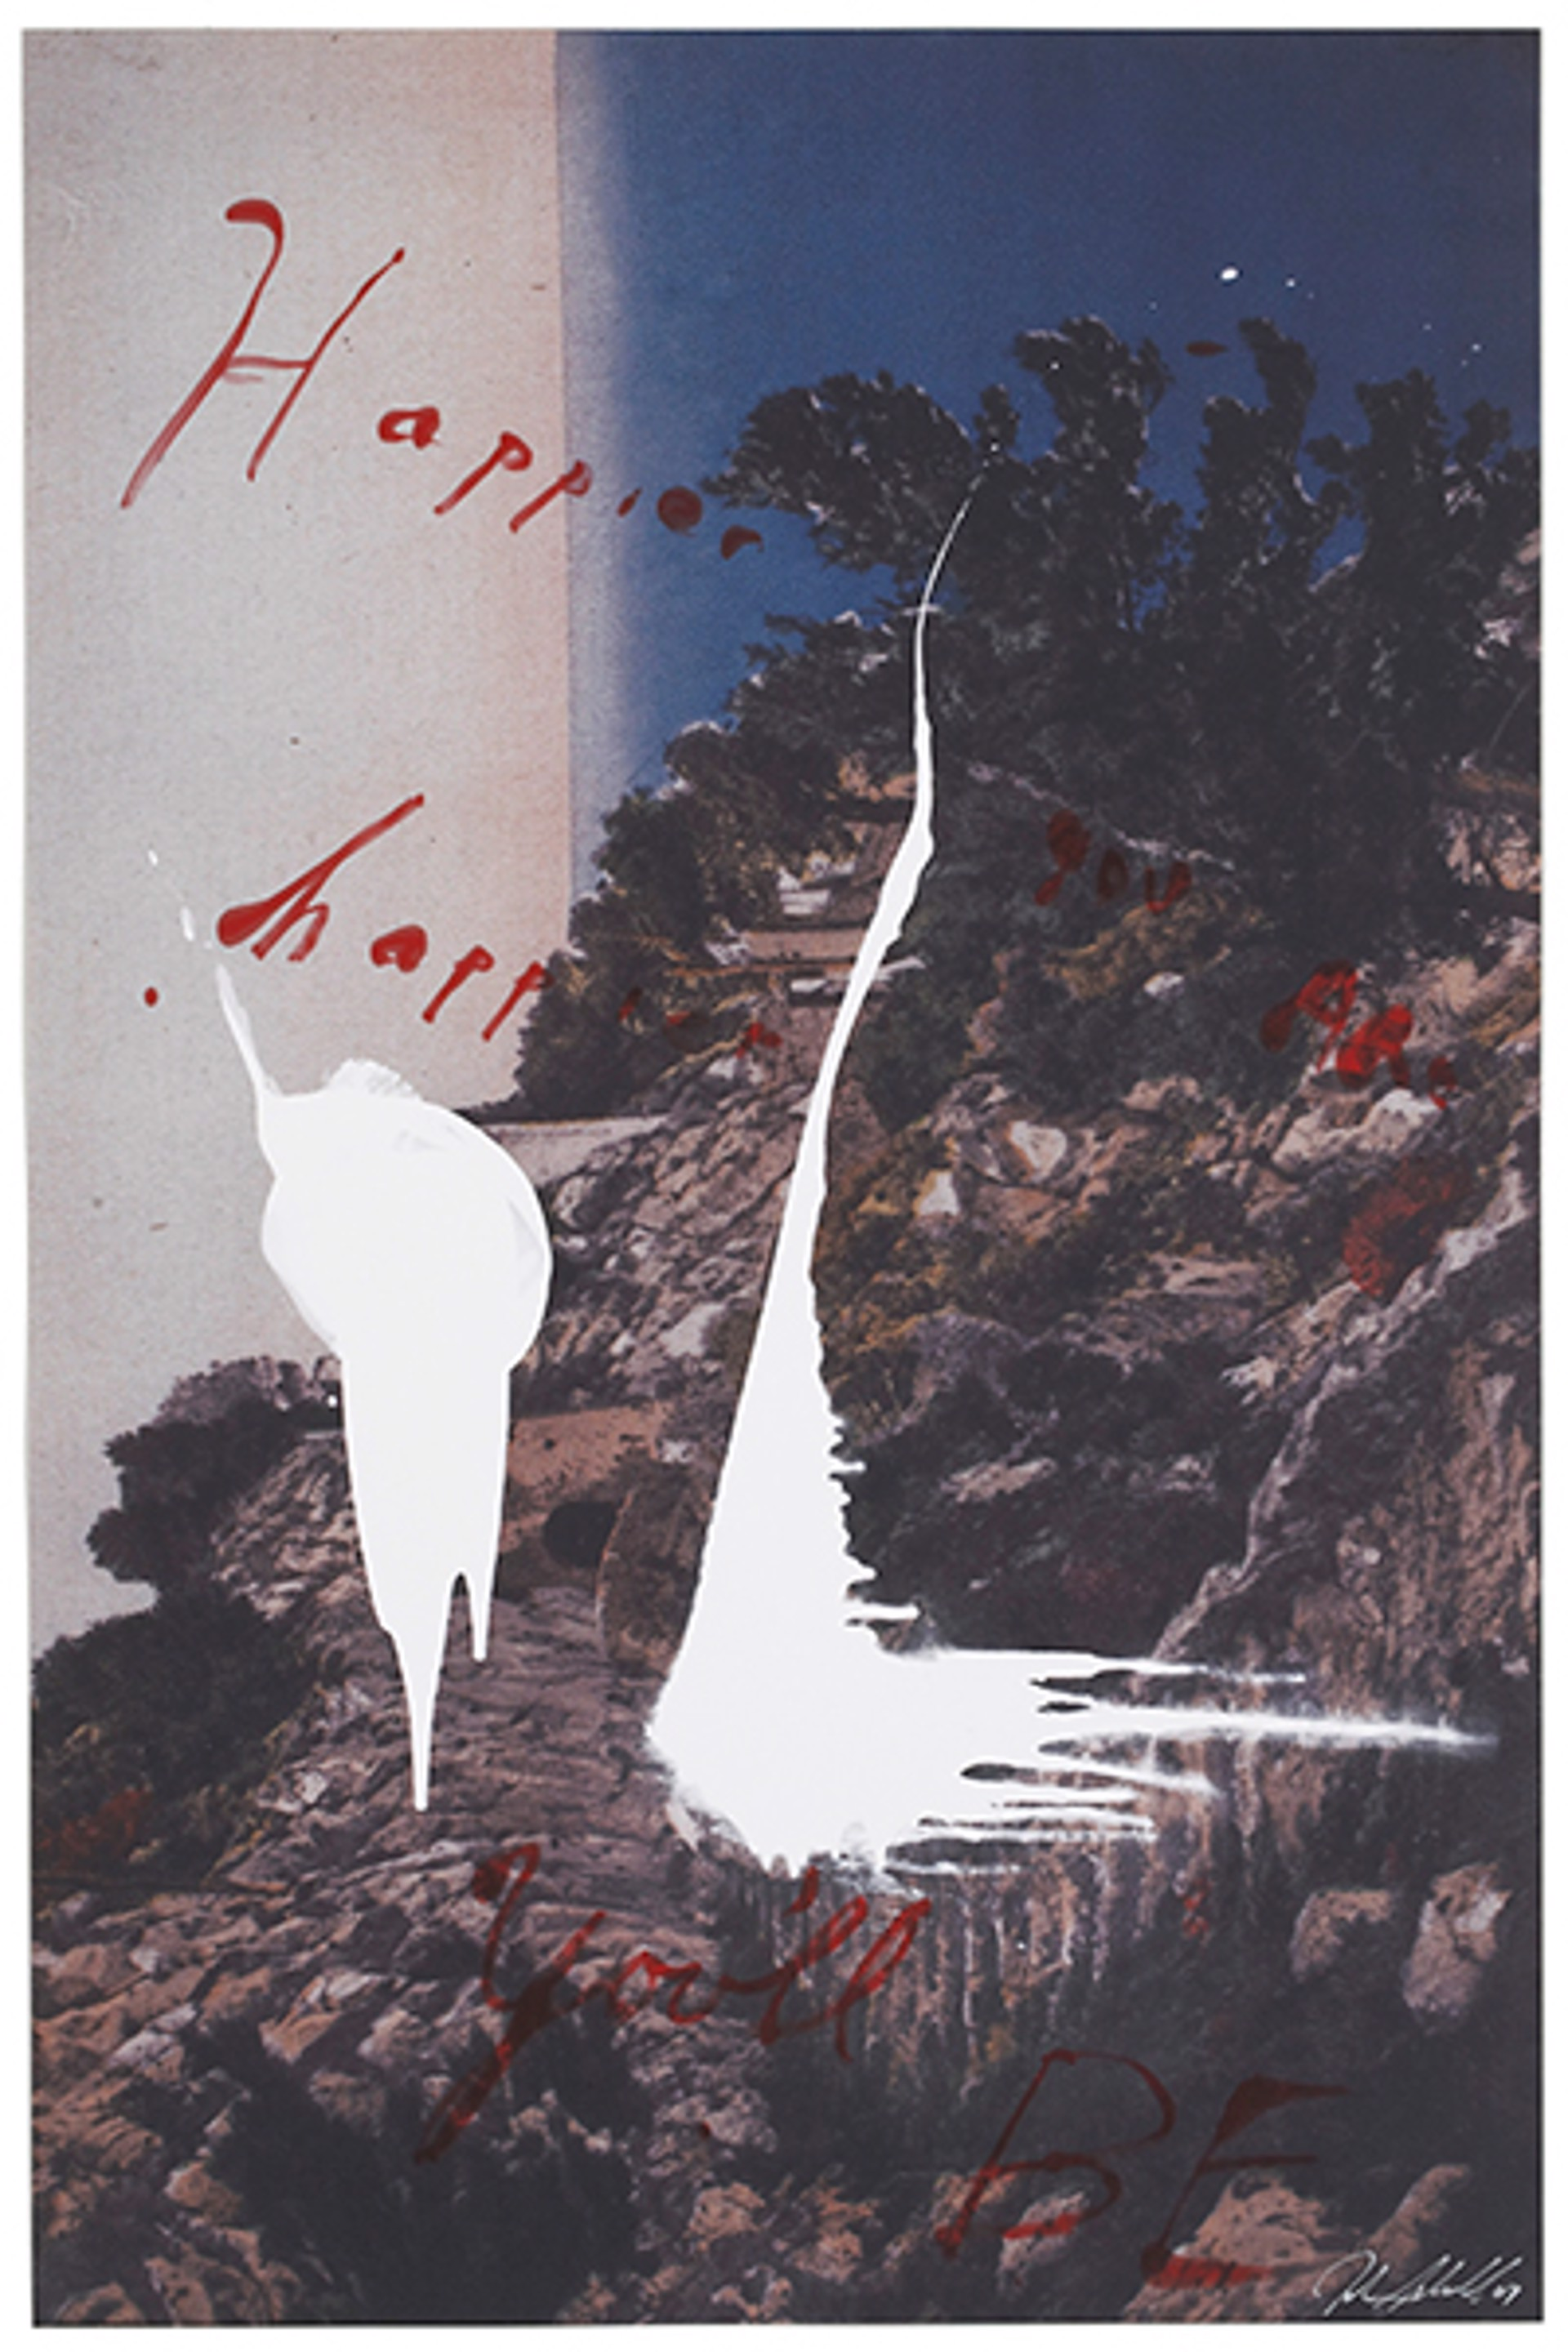 Happier You Are_Happier You'll Be by Julian Schnabel